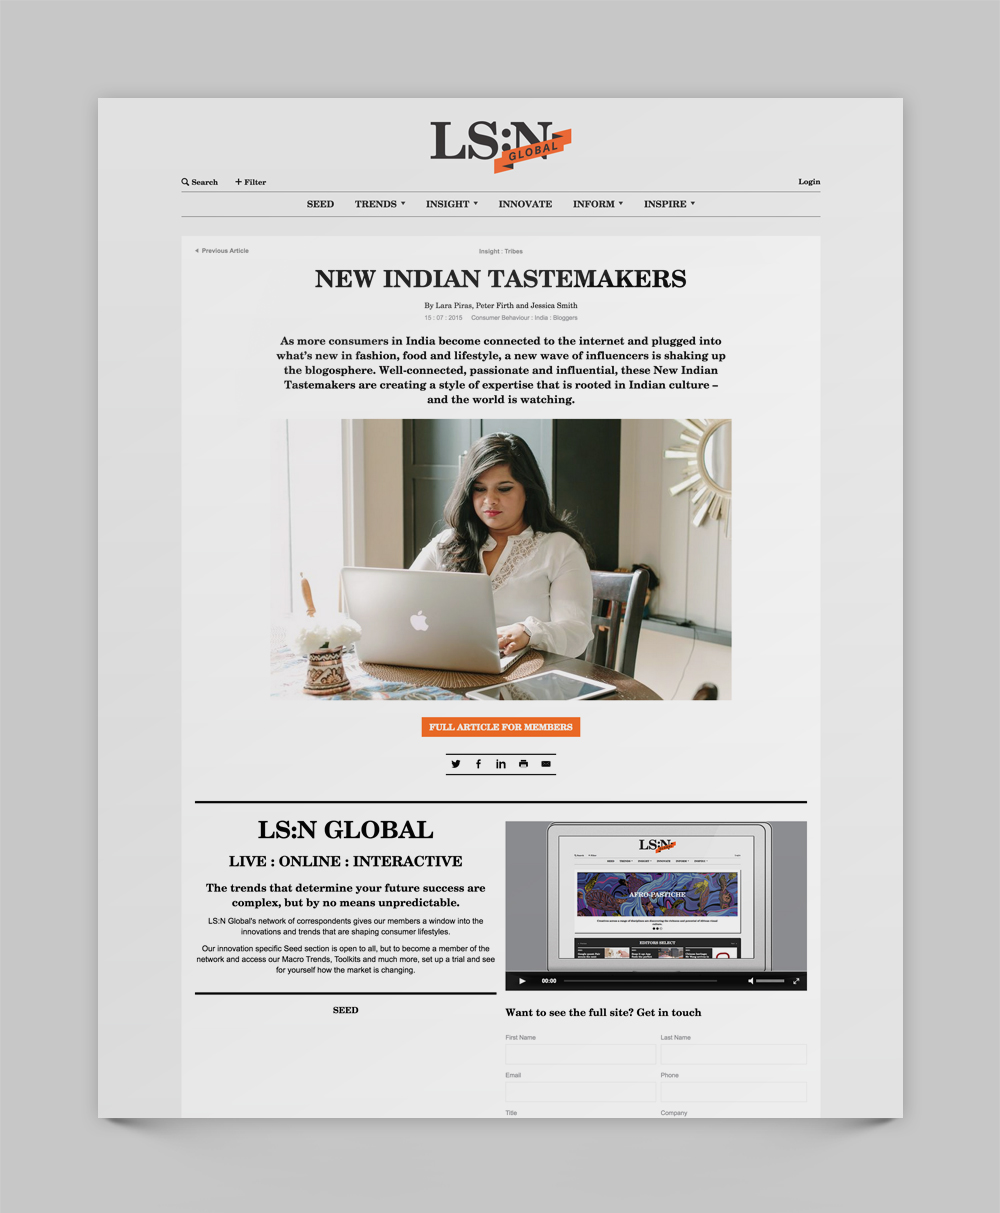 lsn-global-new-indian-tastemakers-feature